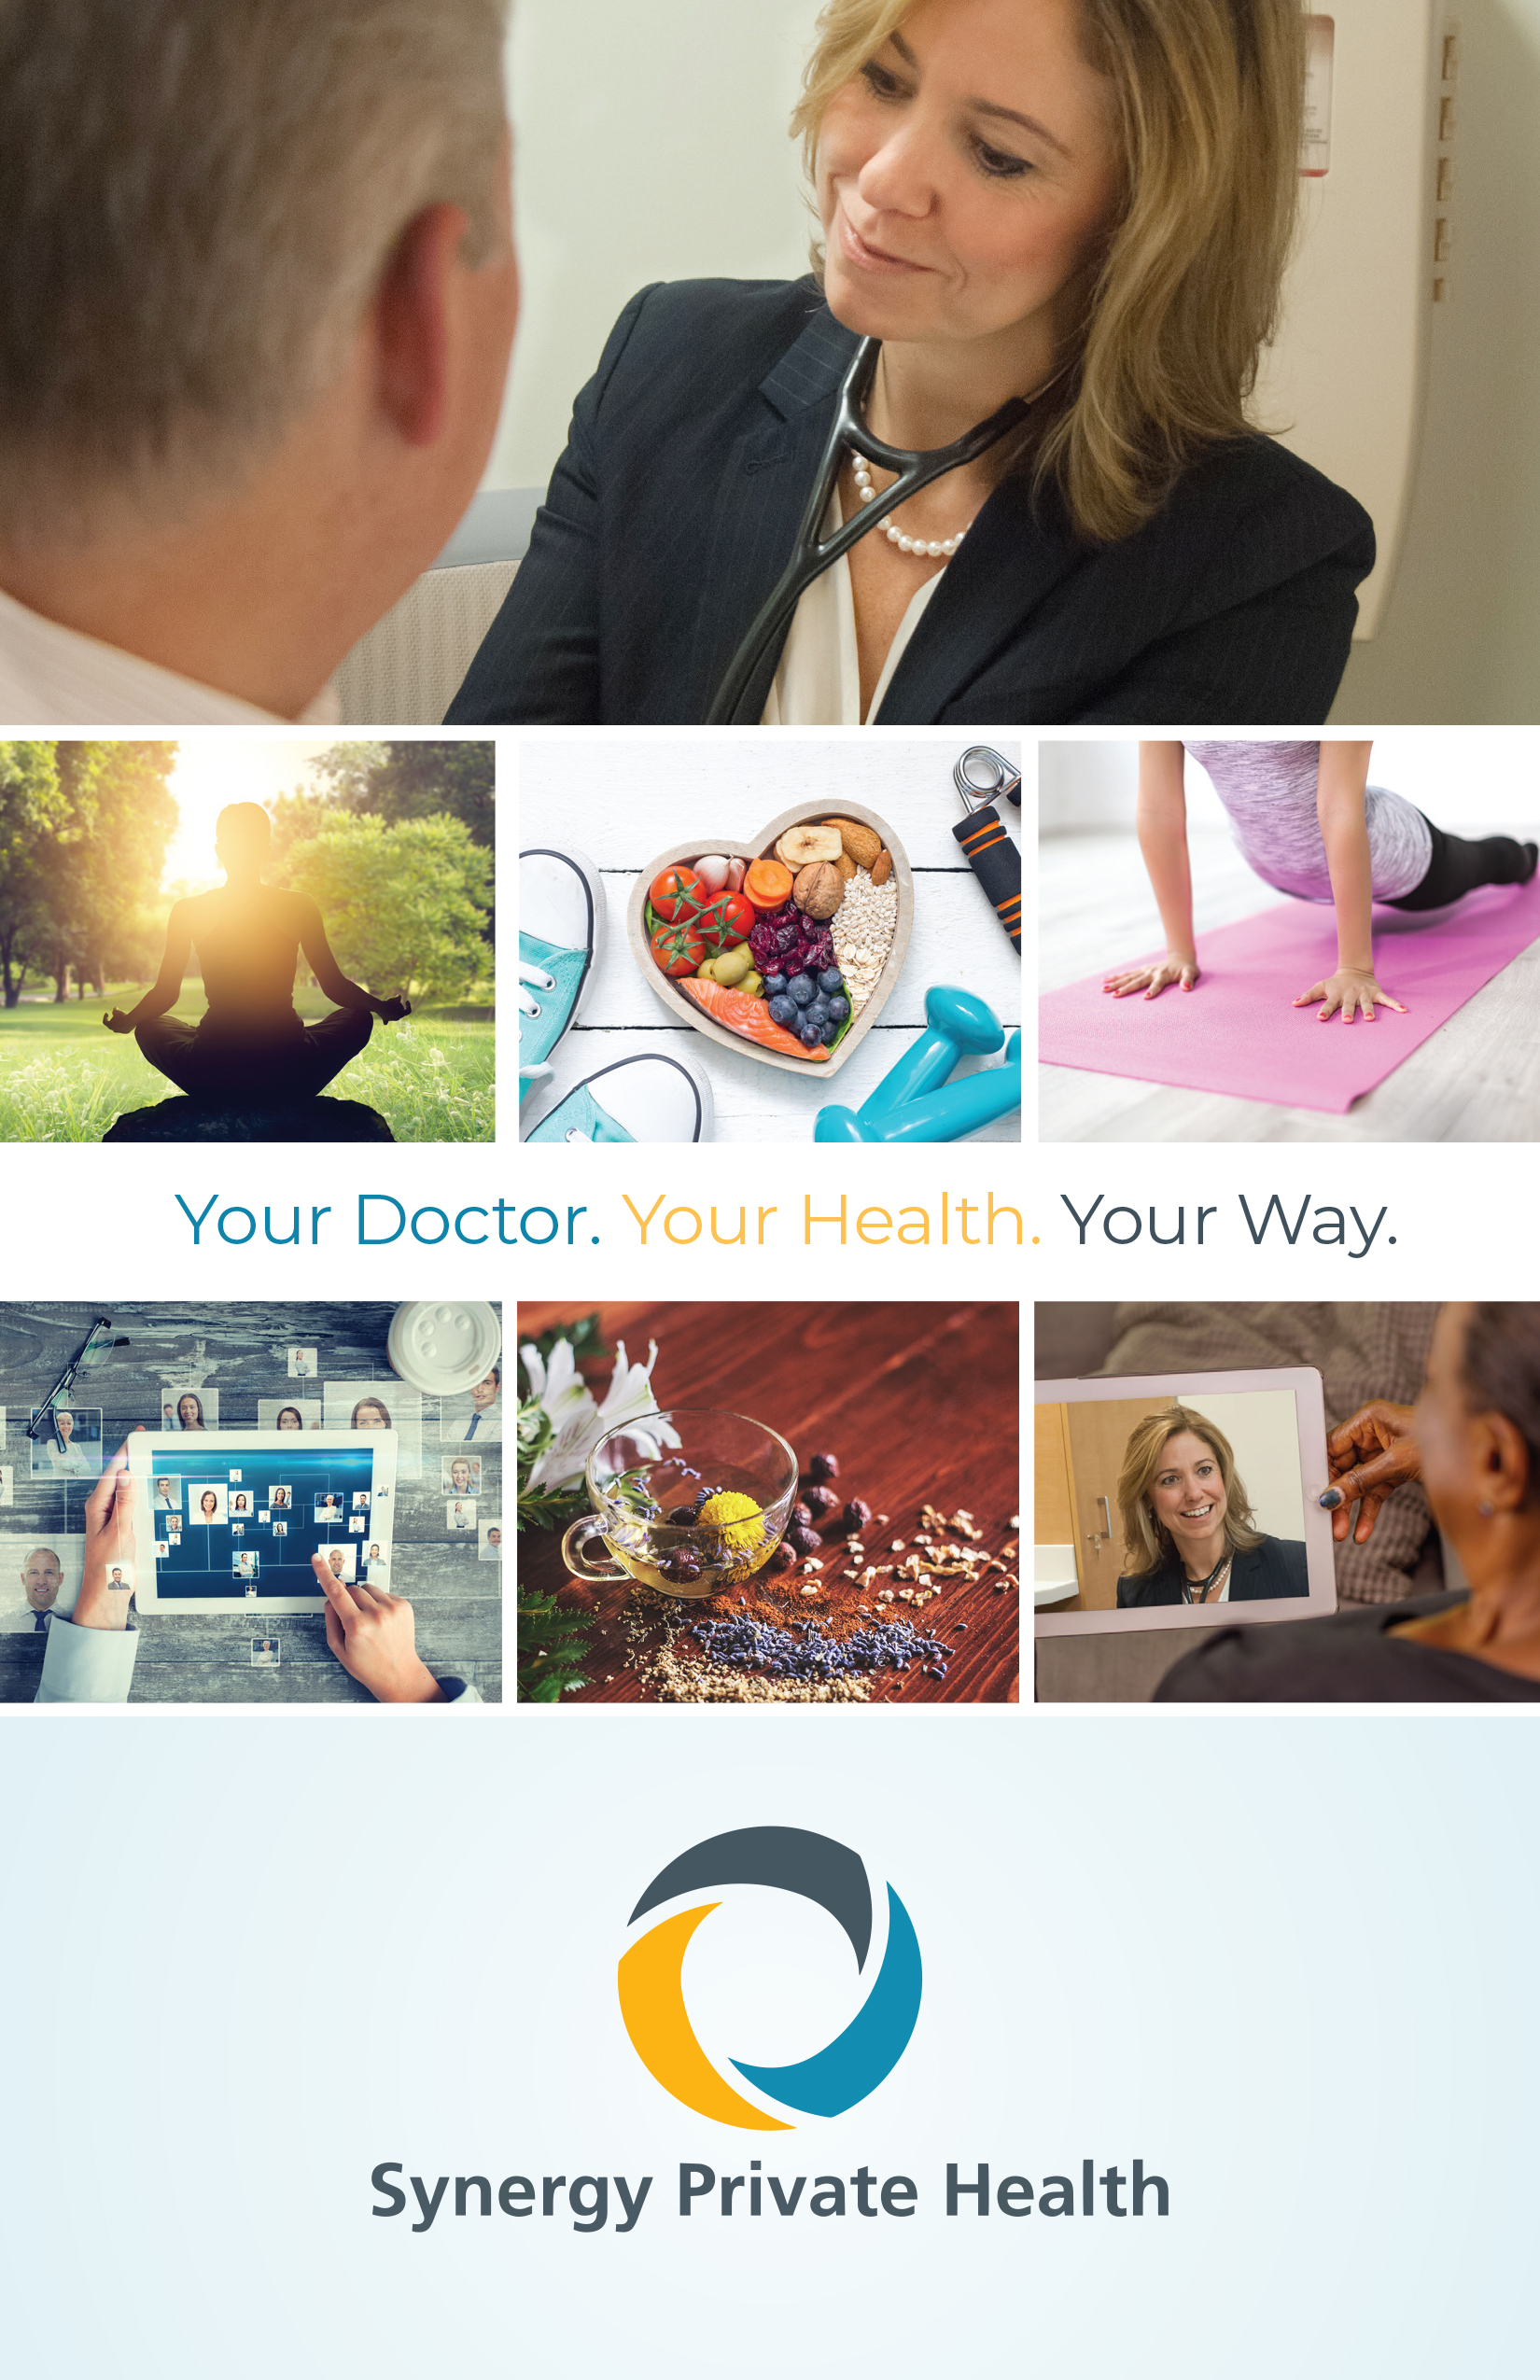 Synergy Private Health